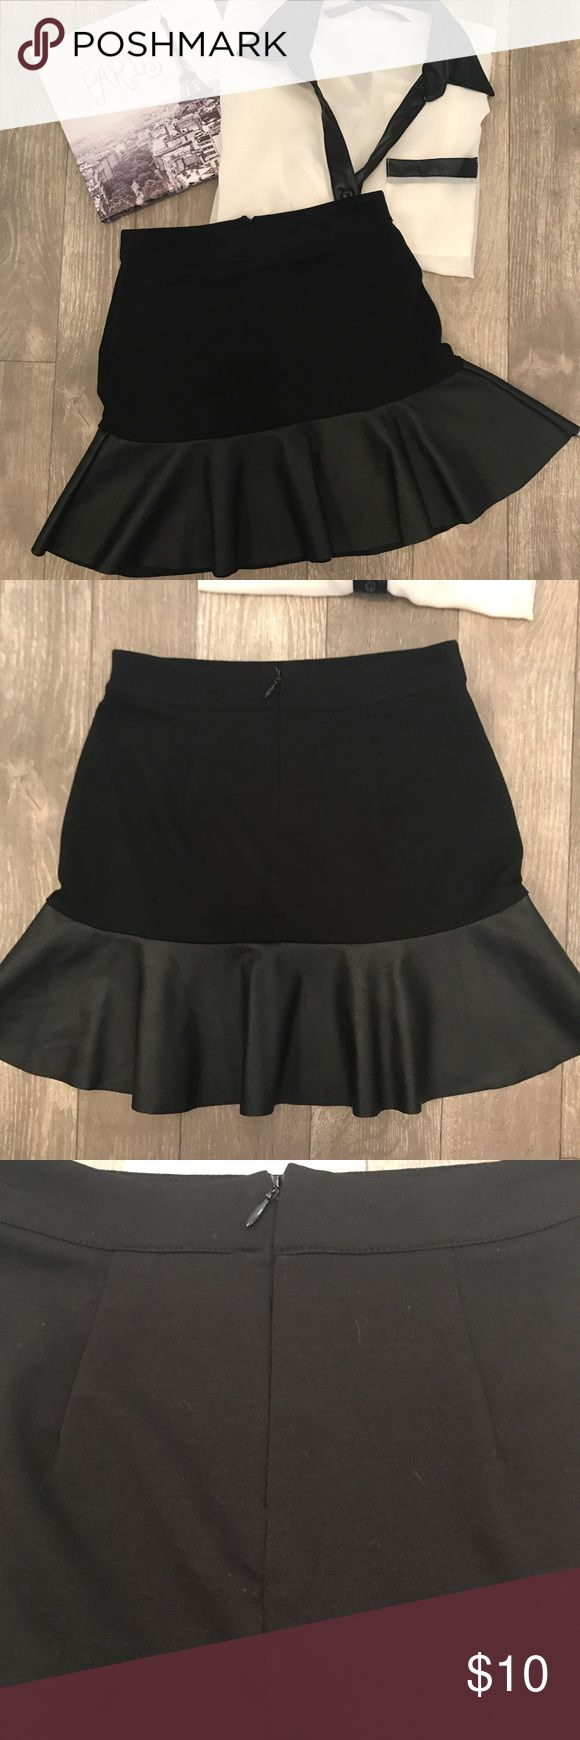 Black Faux Leather Trumpet Skirt S Excellent condition with no flaws! 100% Polyester. Forever 21 Skirts